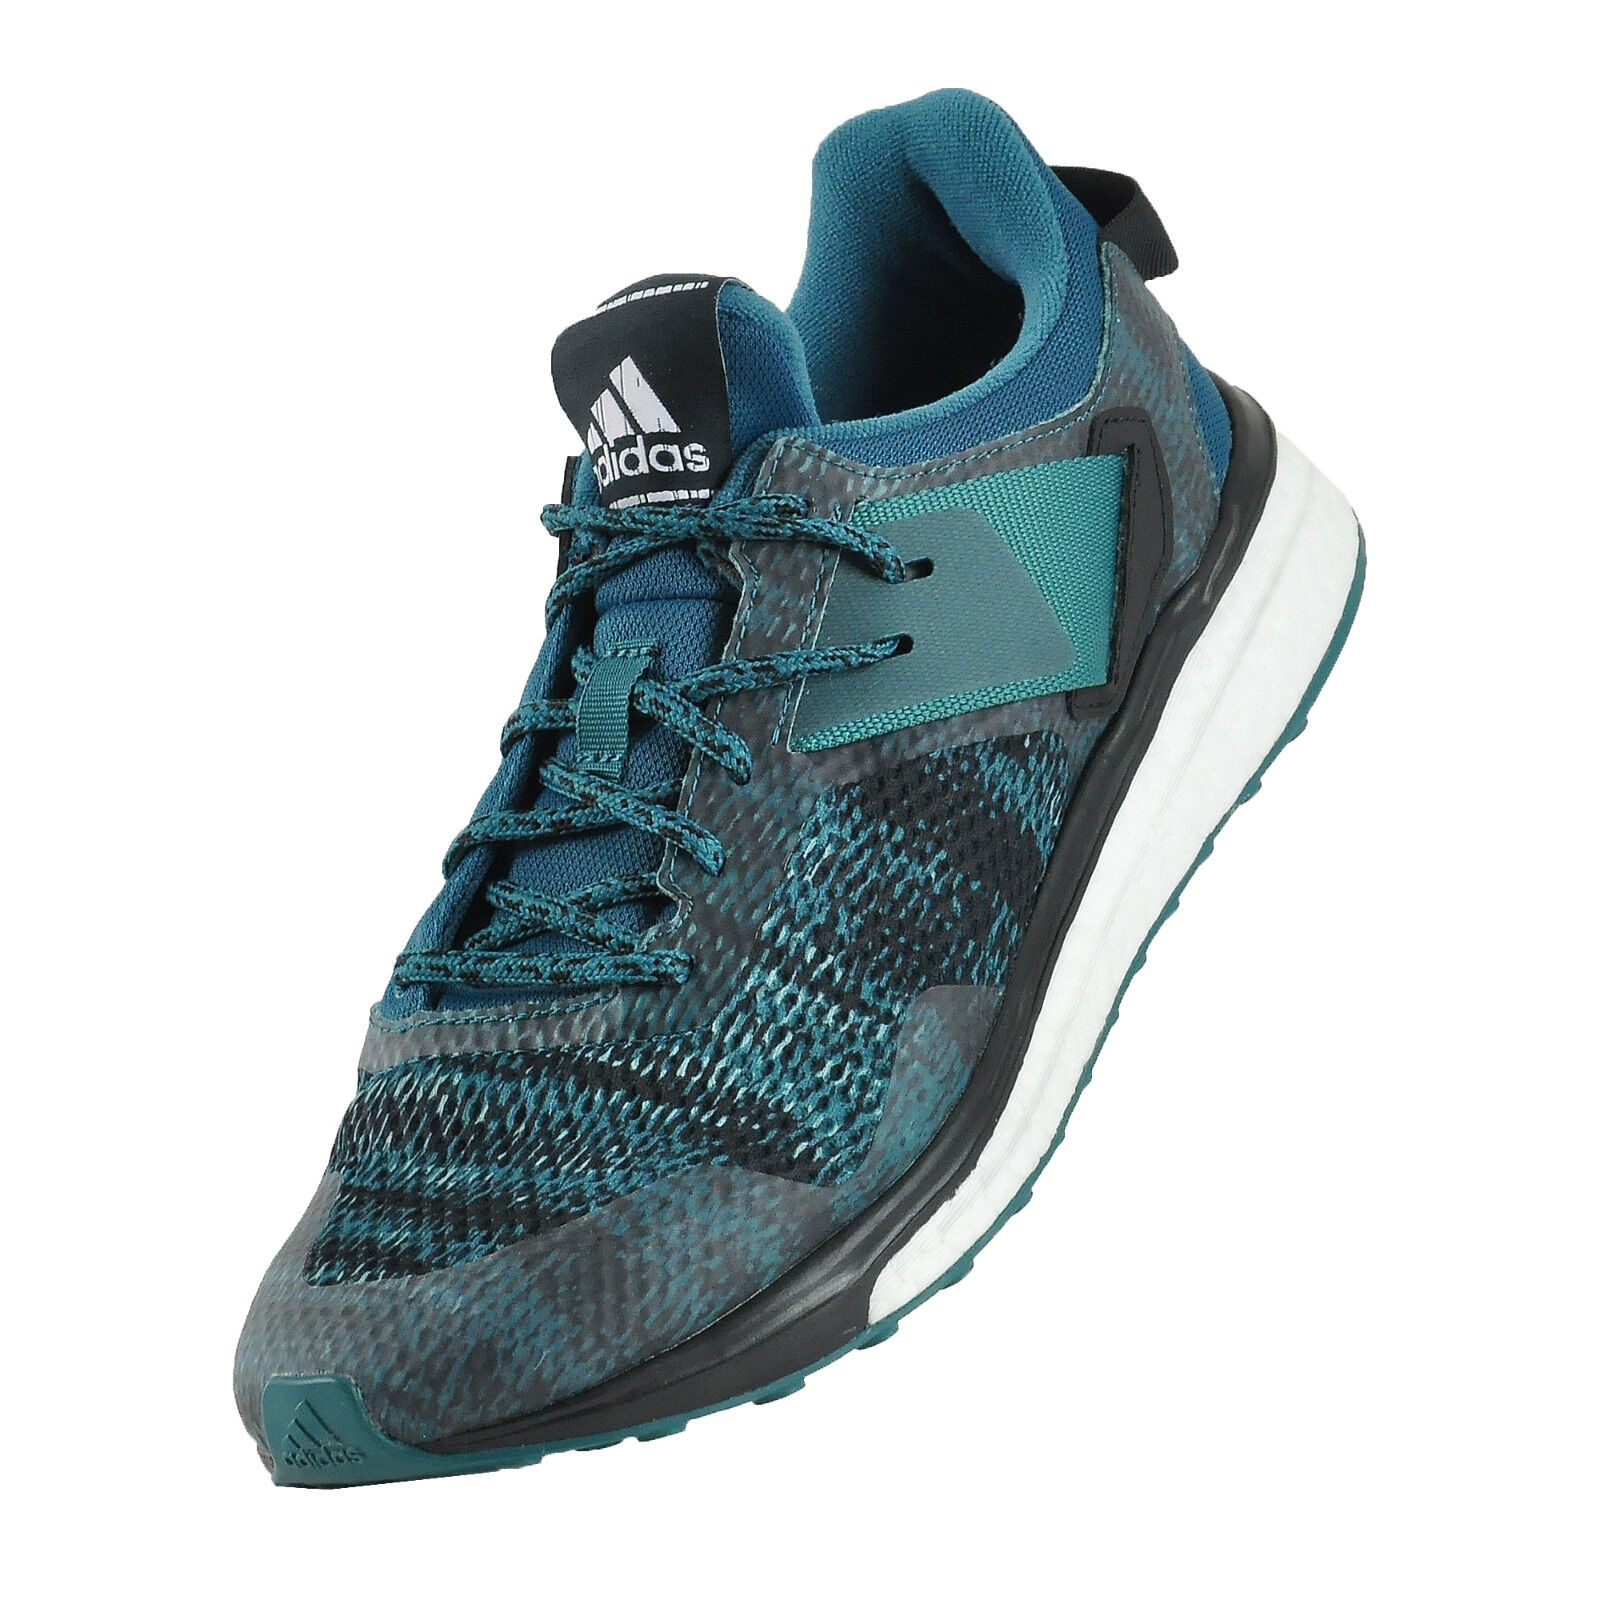 Adidas RESPONSE 3 BOOST Pure Energy Ultra Running Gym Training shoesMens size 12